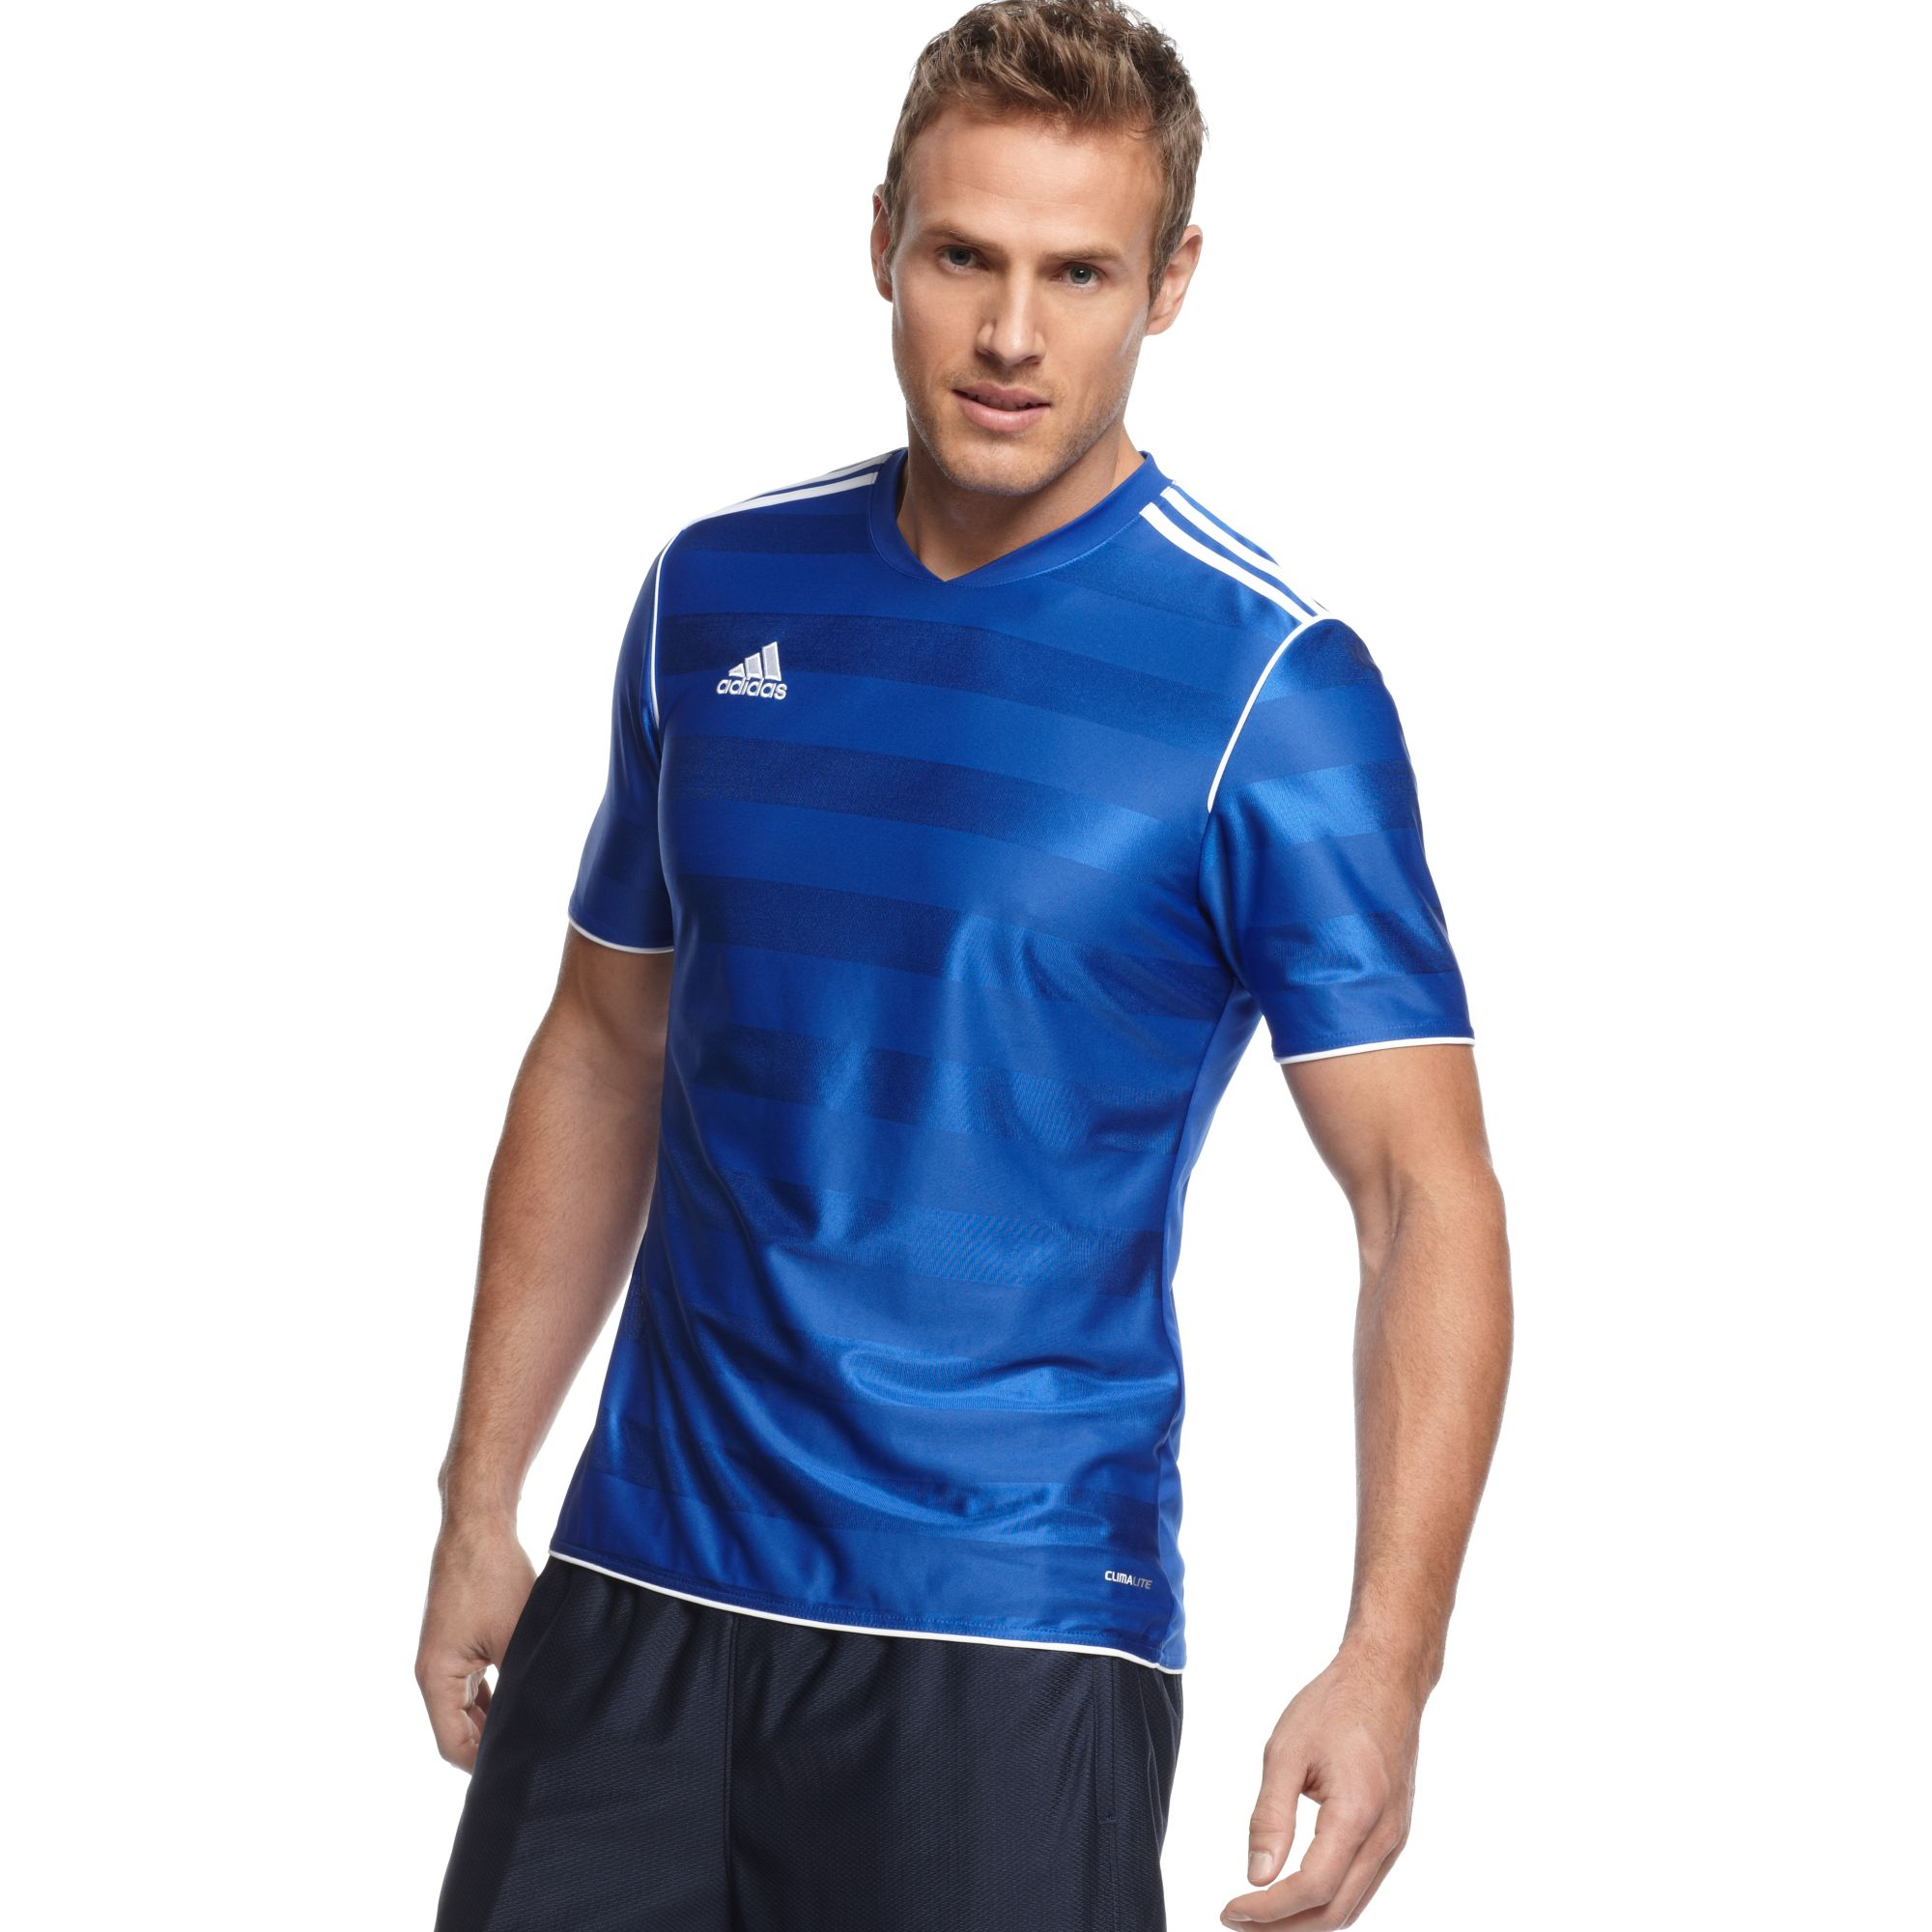 adidas T Shirt Tabela 11 Climalite Soccer Jersey in White (Blue ...